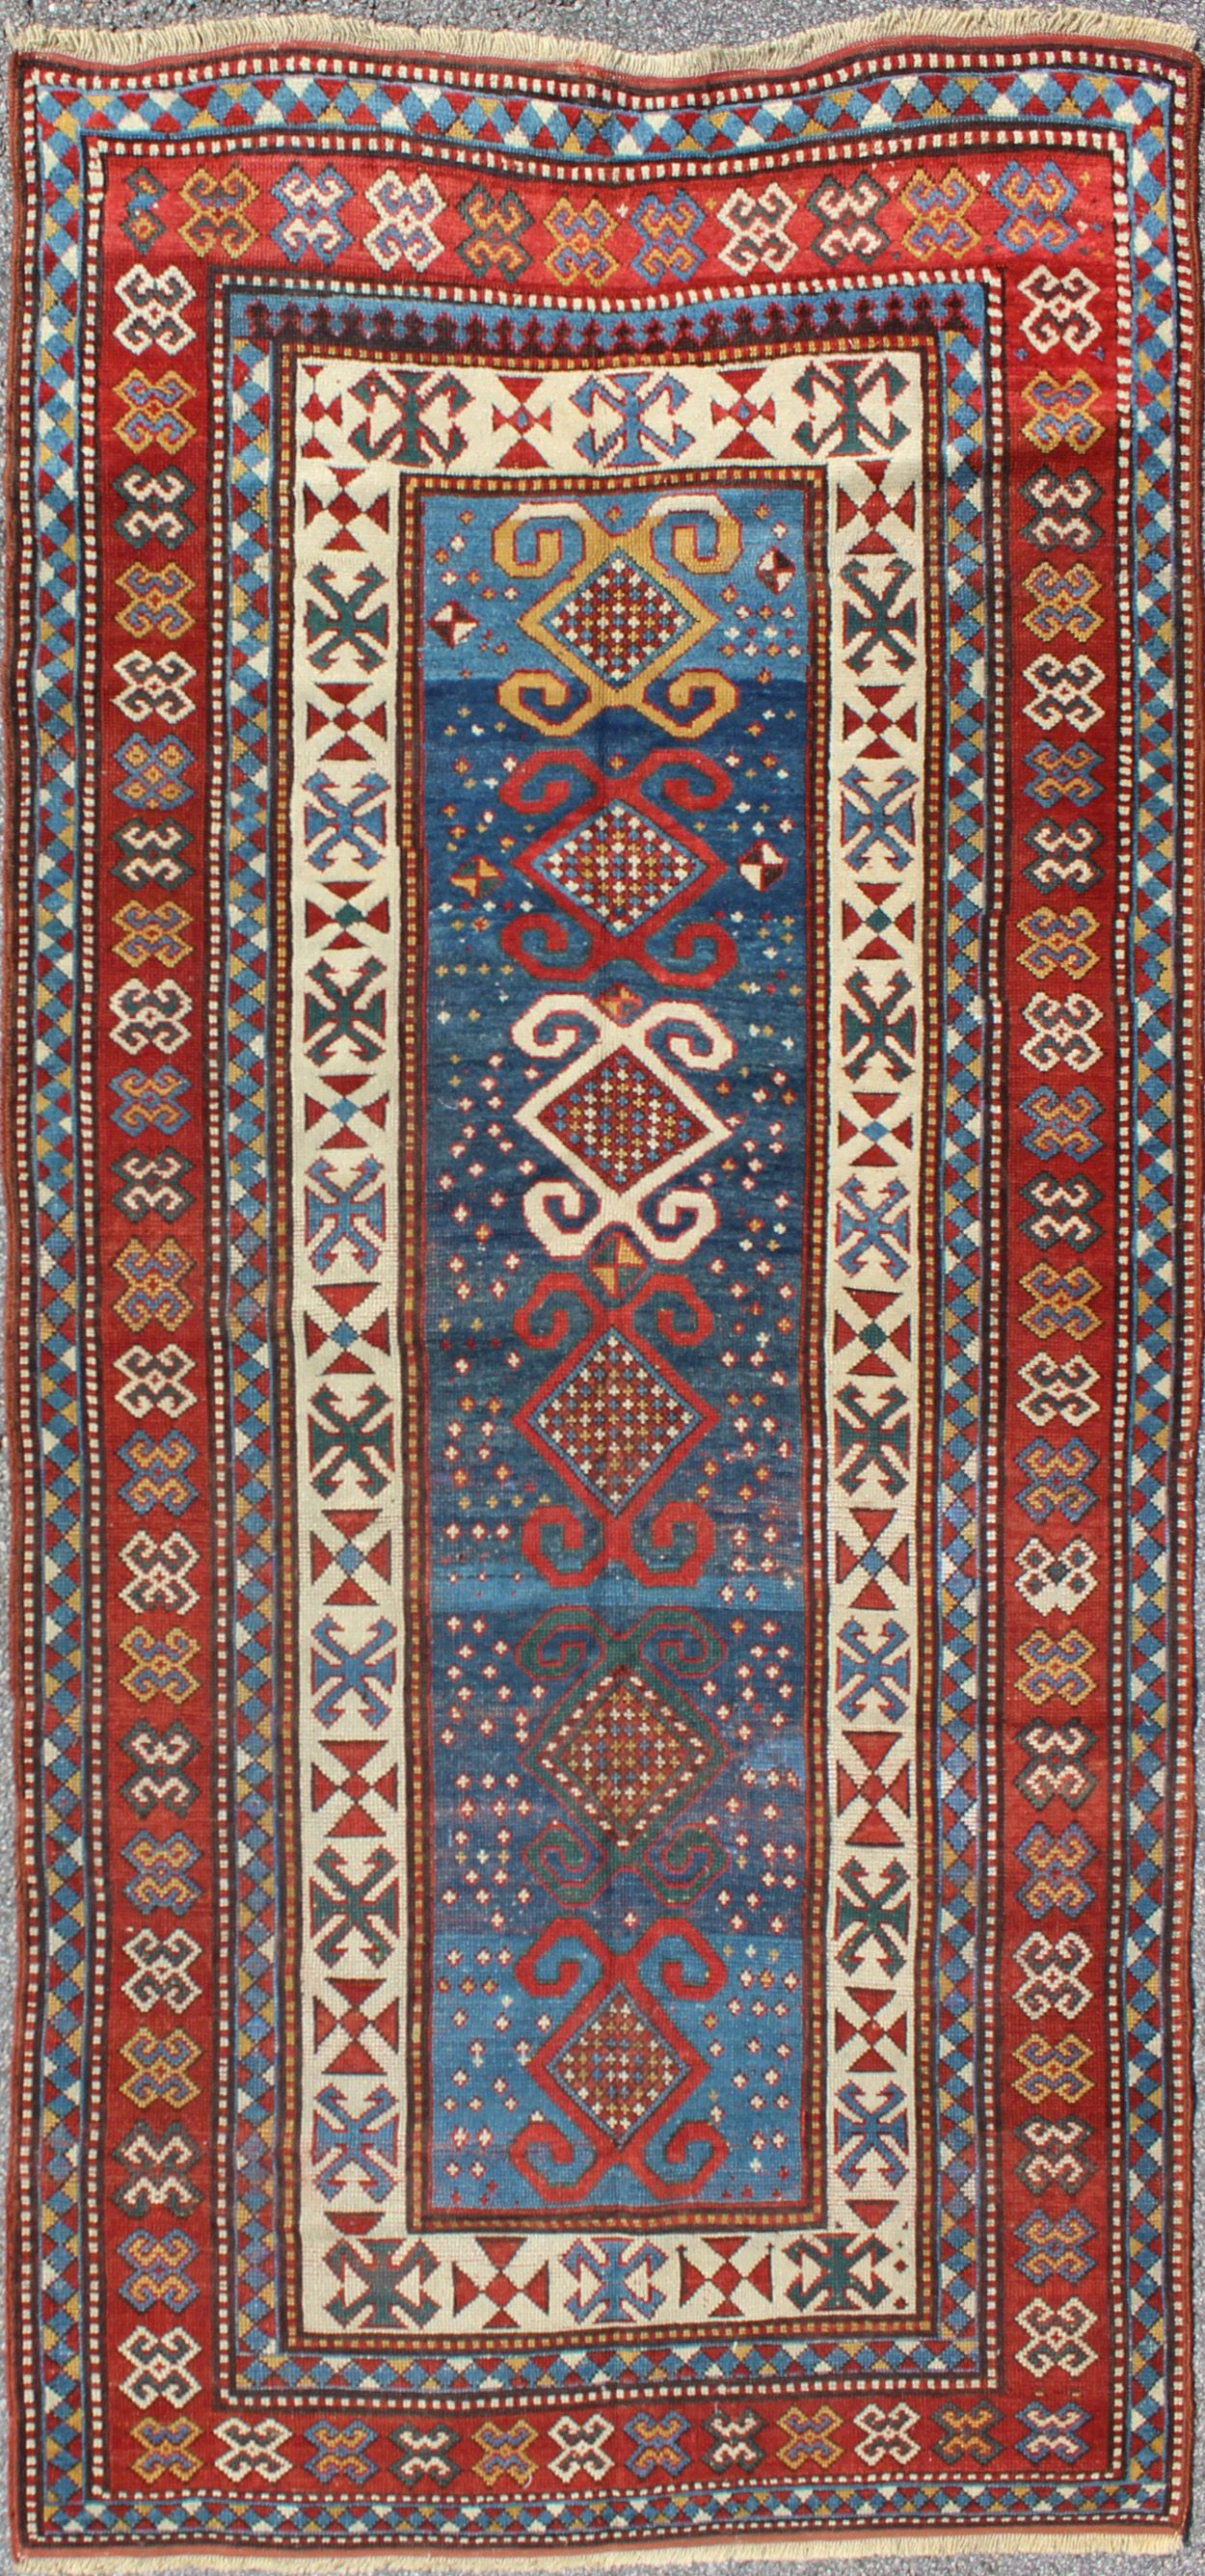 Www Keivanwovenarts Com Index Php Option Com Rugs Task Cls From Width Width From Length Length Units 304 8 Rug Ty Carpet Handmade Rugs On Carpet Asian Rugs